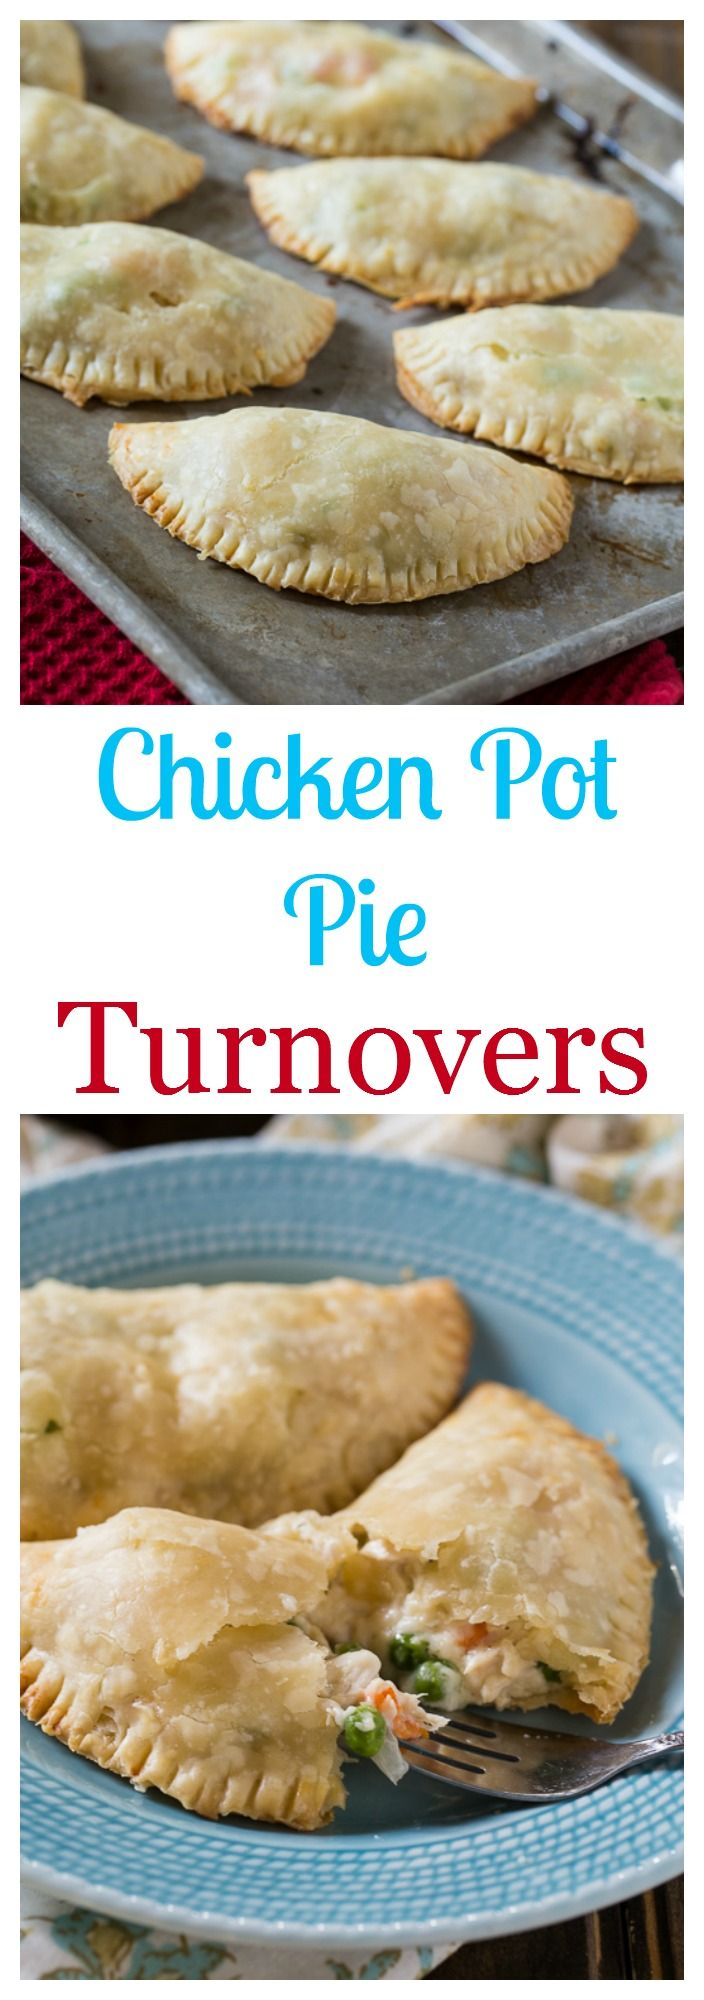 ... turnovers tiny chicken turnovers beef turnovers tiny chicken turnovers